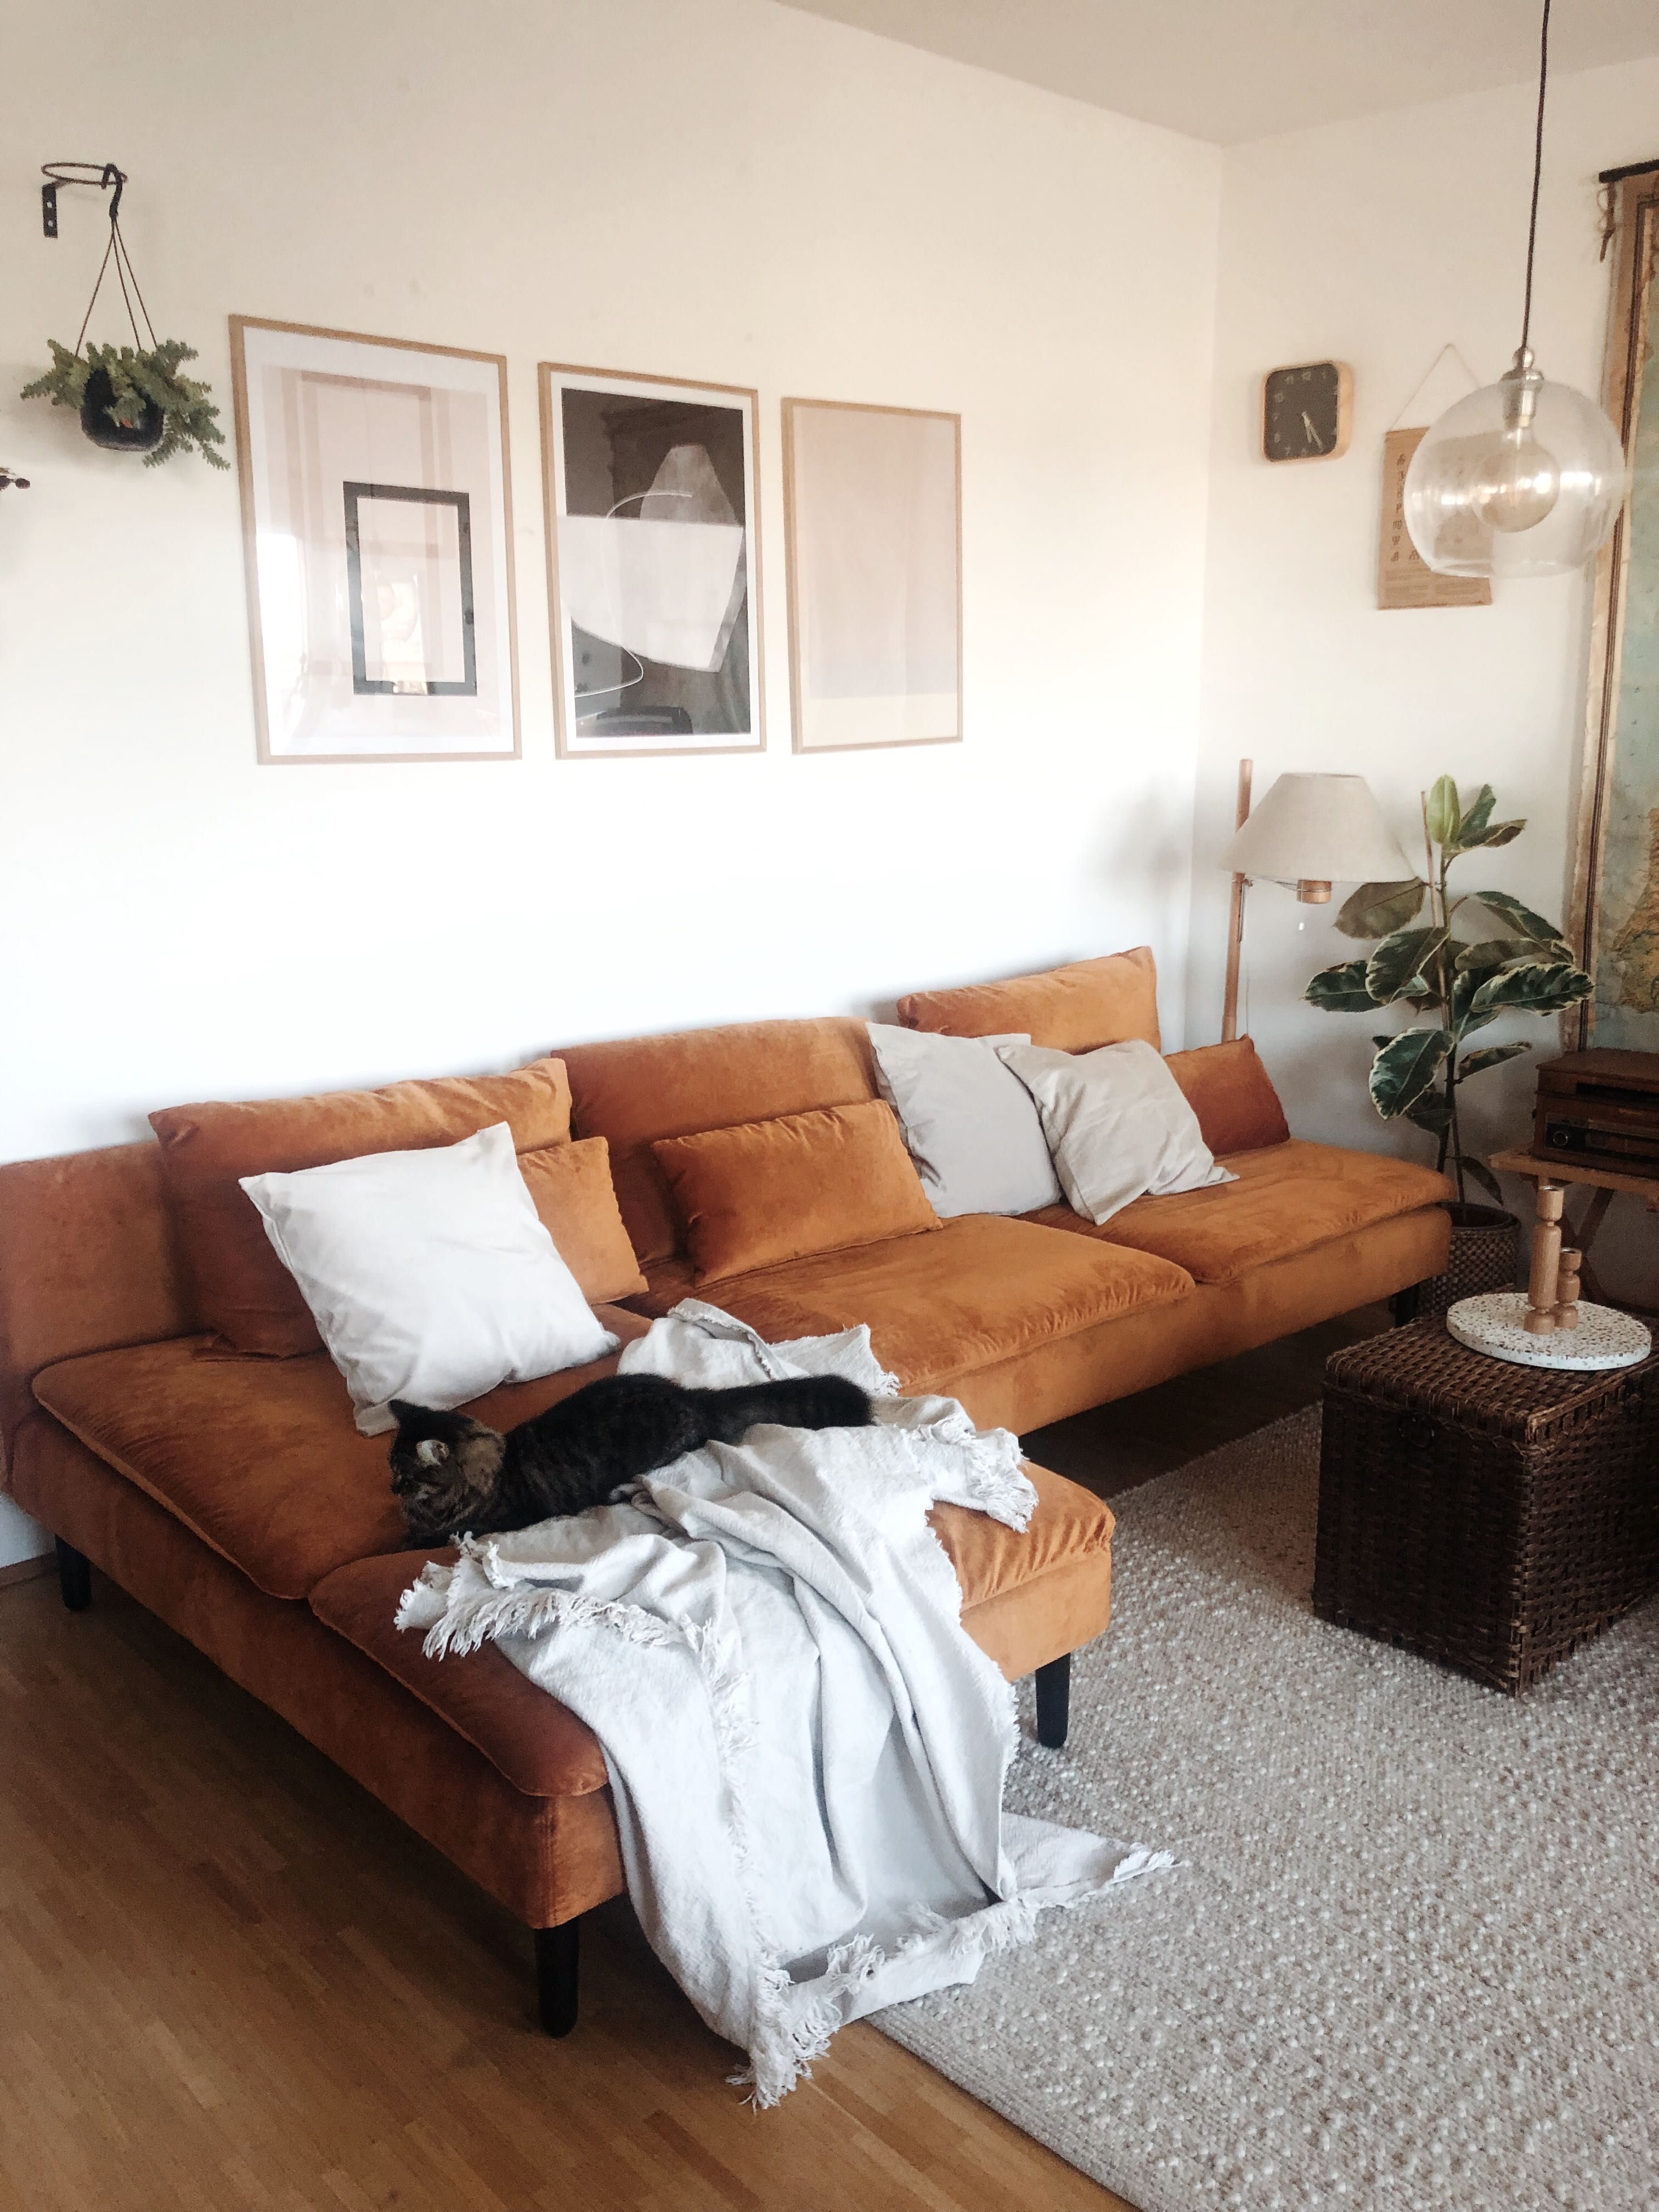 We Re Loving This Vintage Retro Style Living Room The Warm Wood